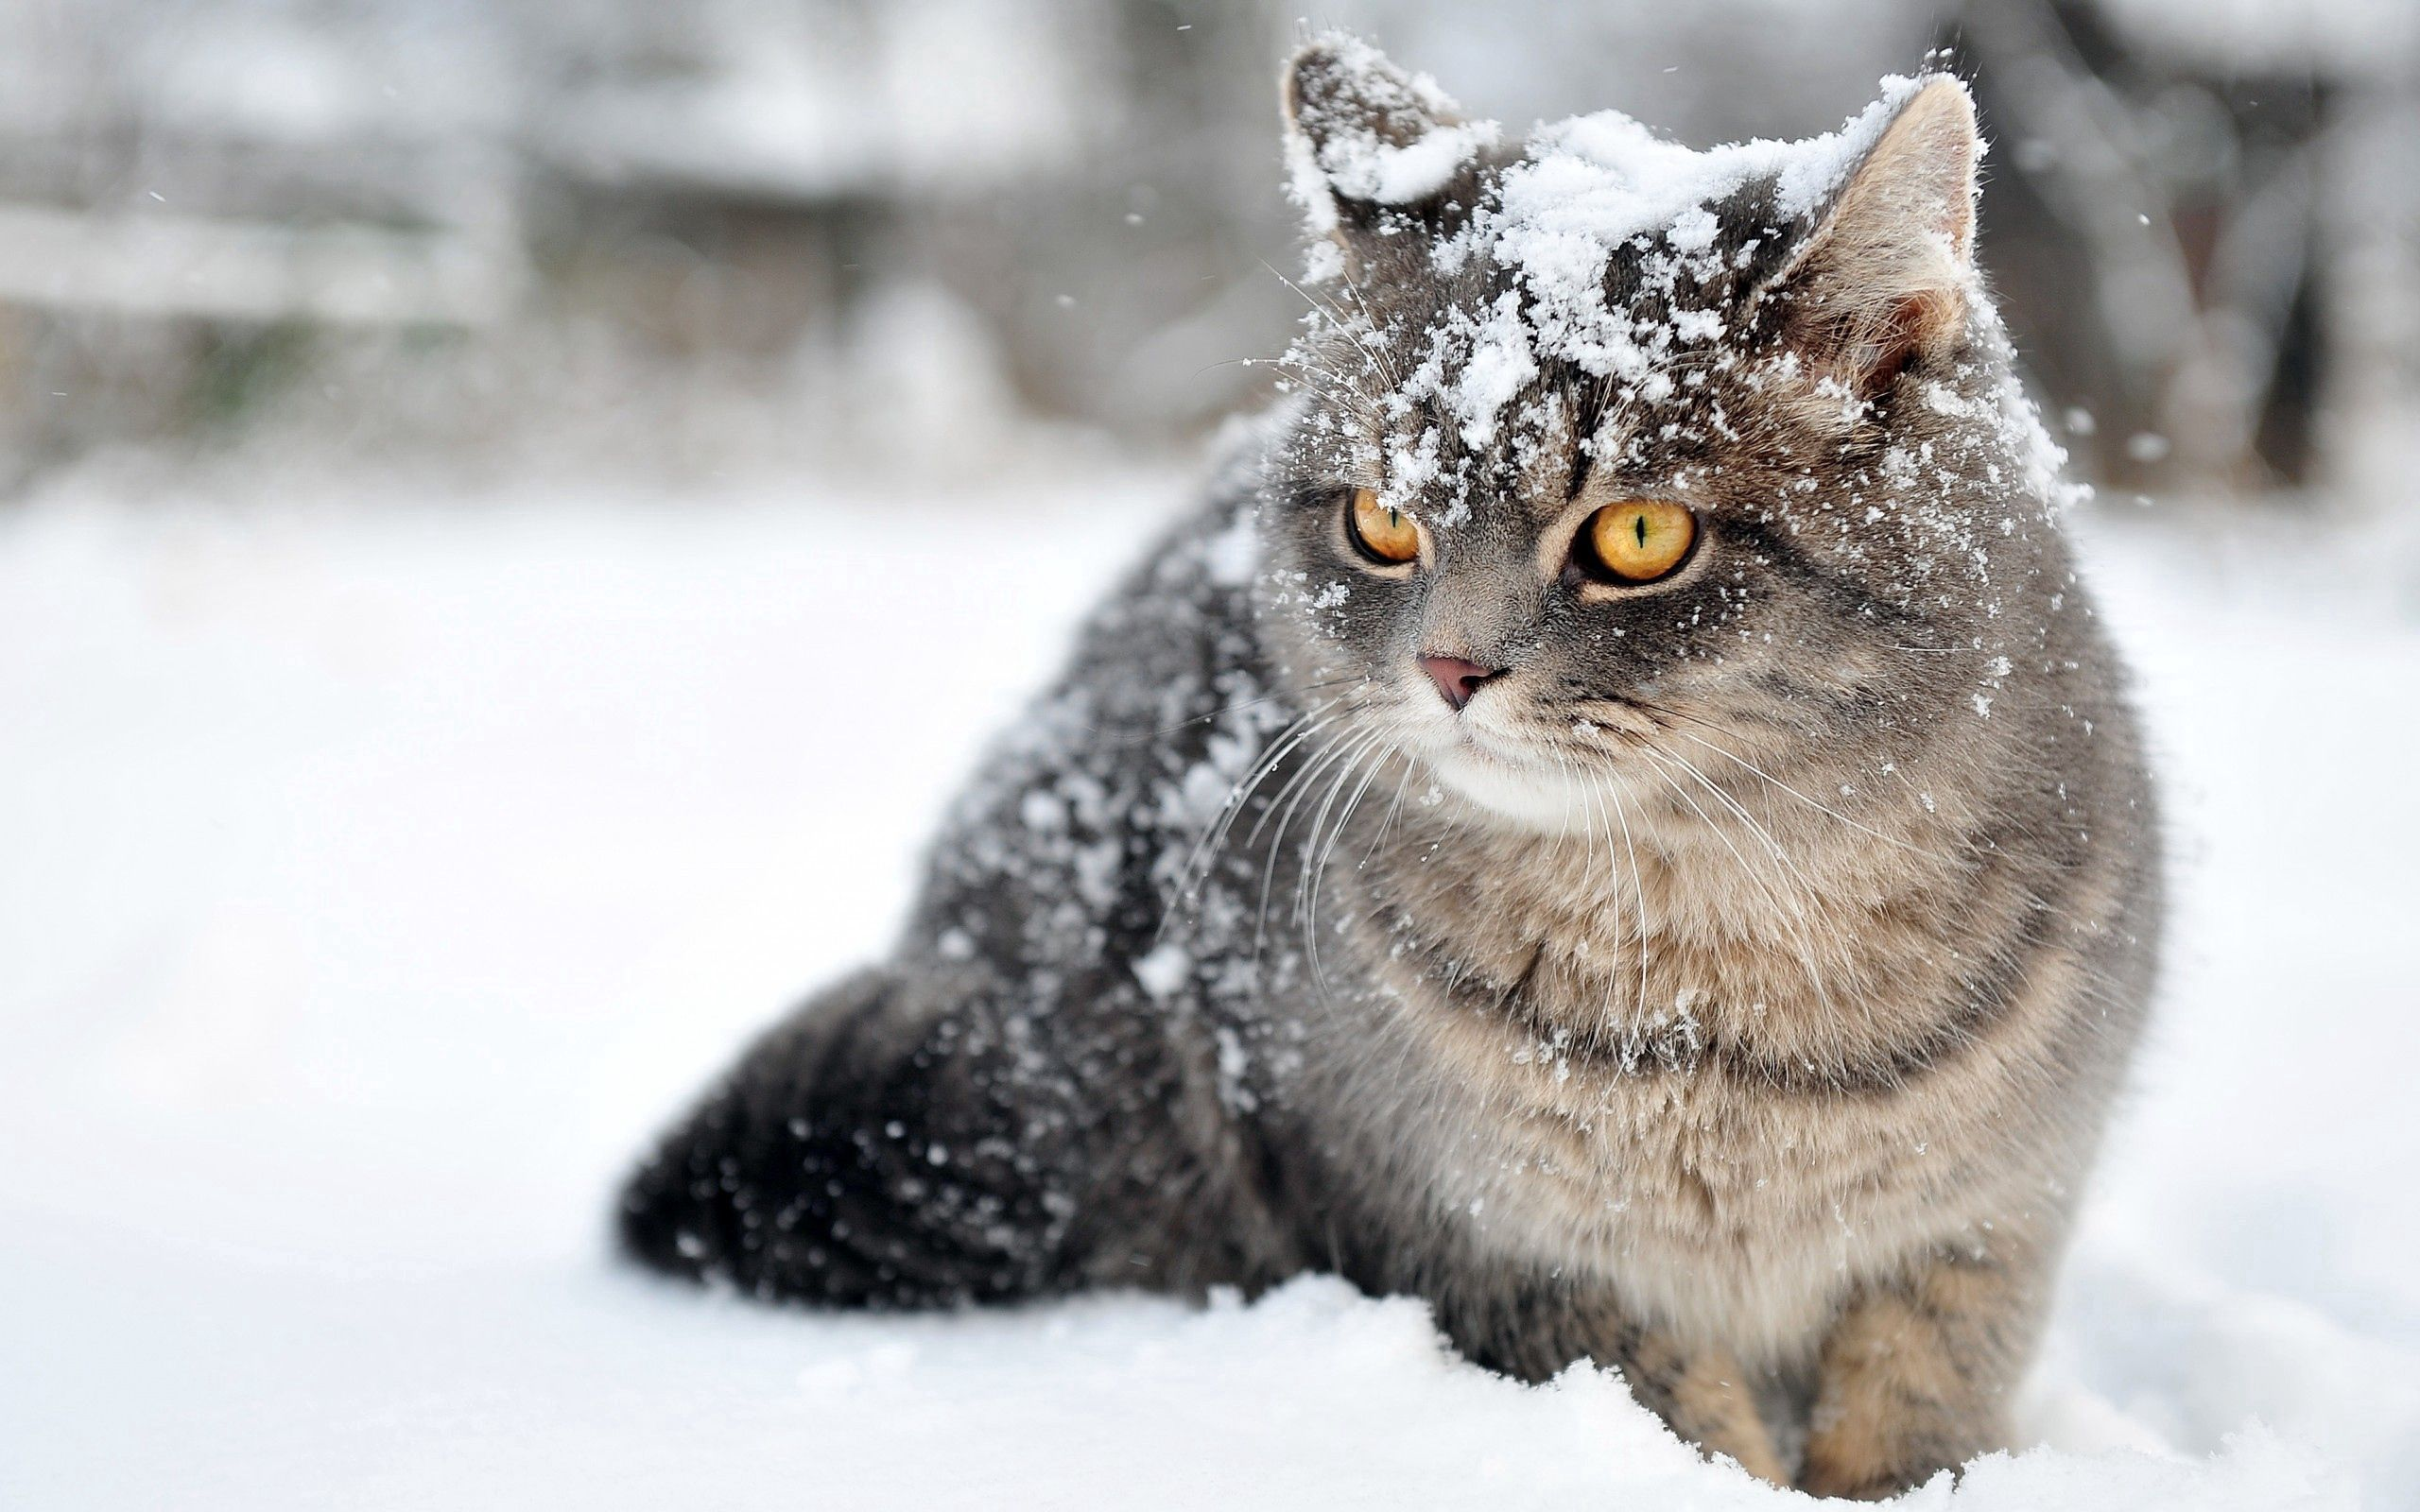 146656 download wallpaper Animals, Snow, Sit, Cat, Fear screensavers and pictures for free